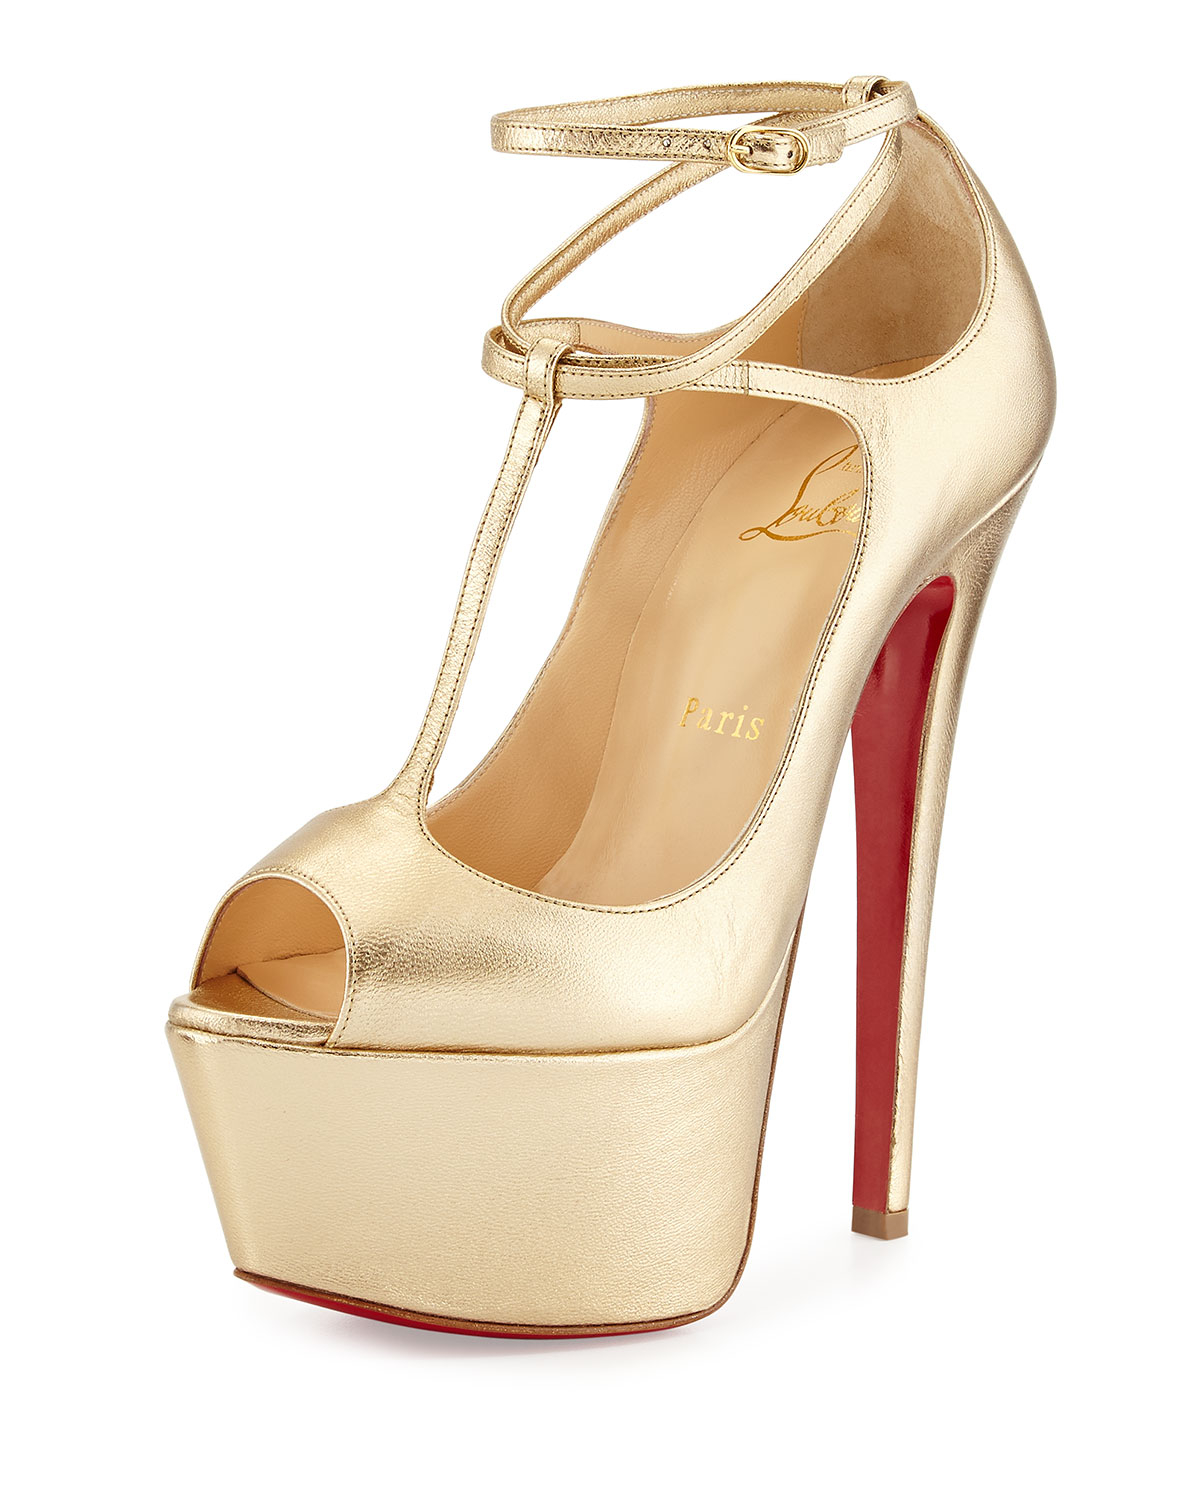 Lyst Christian Louboutin Talitha Platform Red Sole Pump